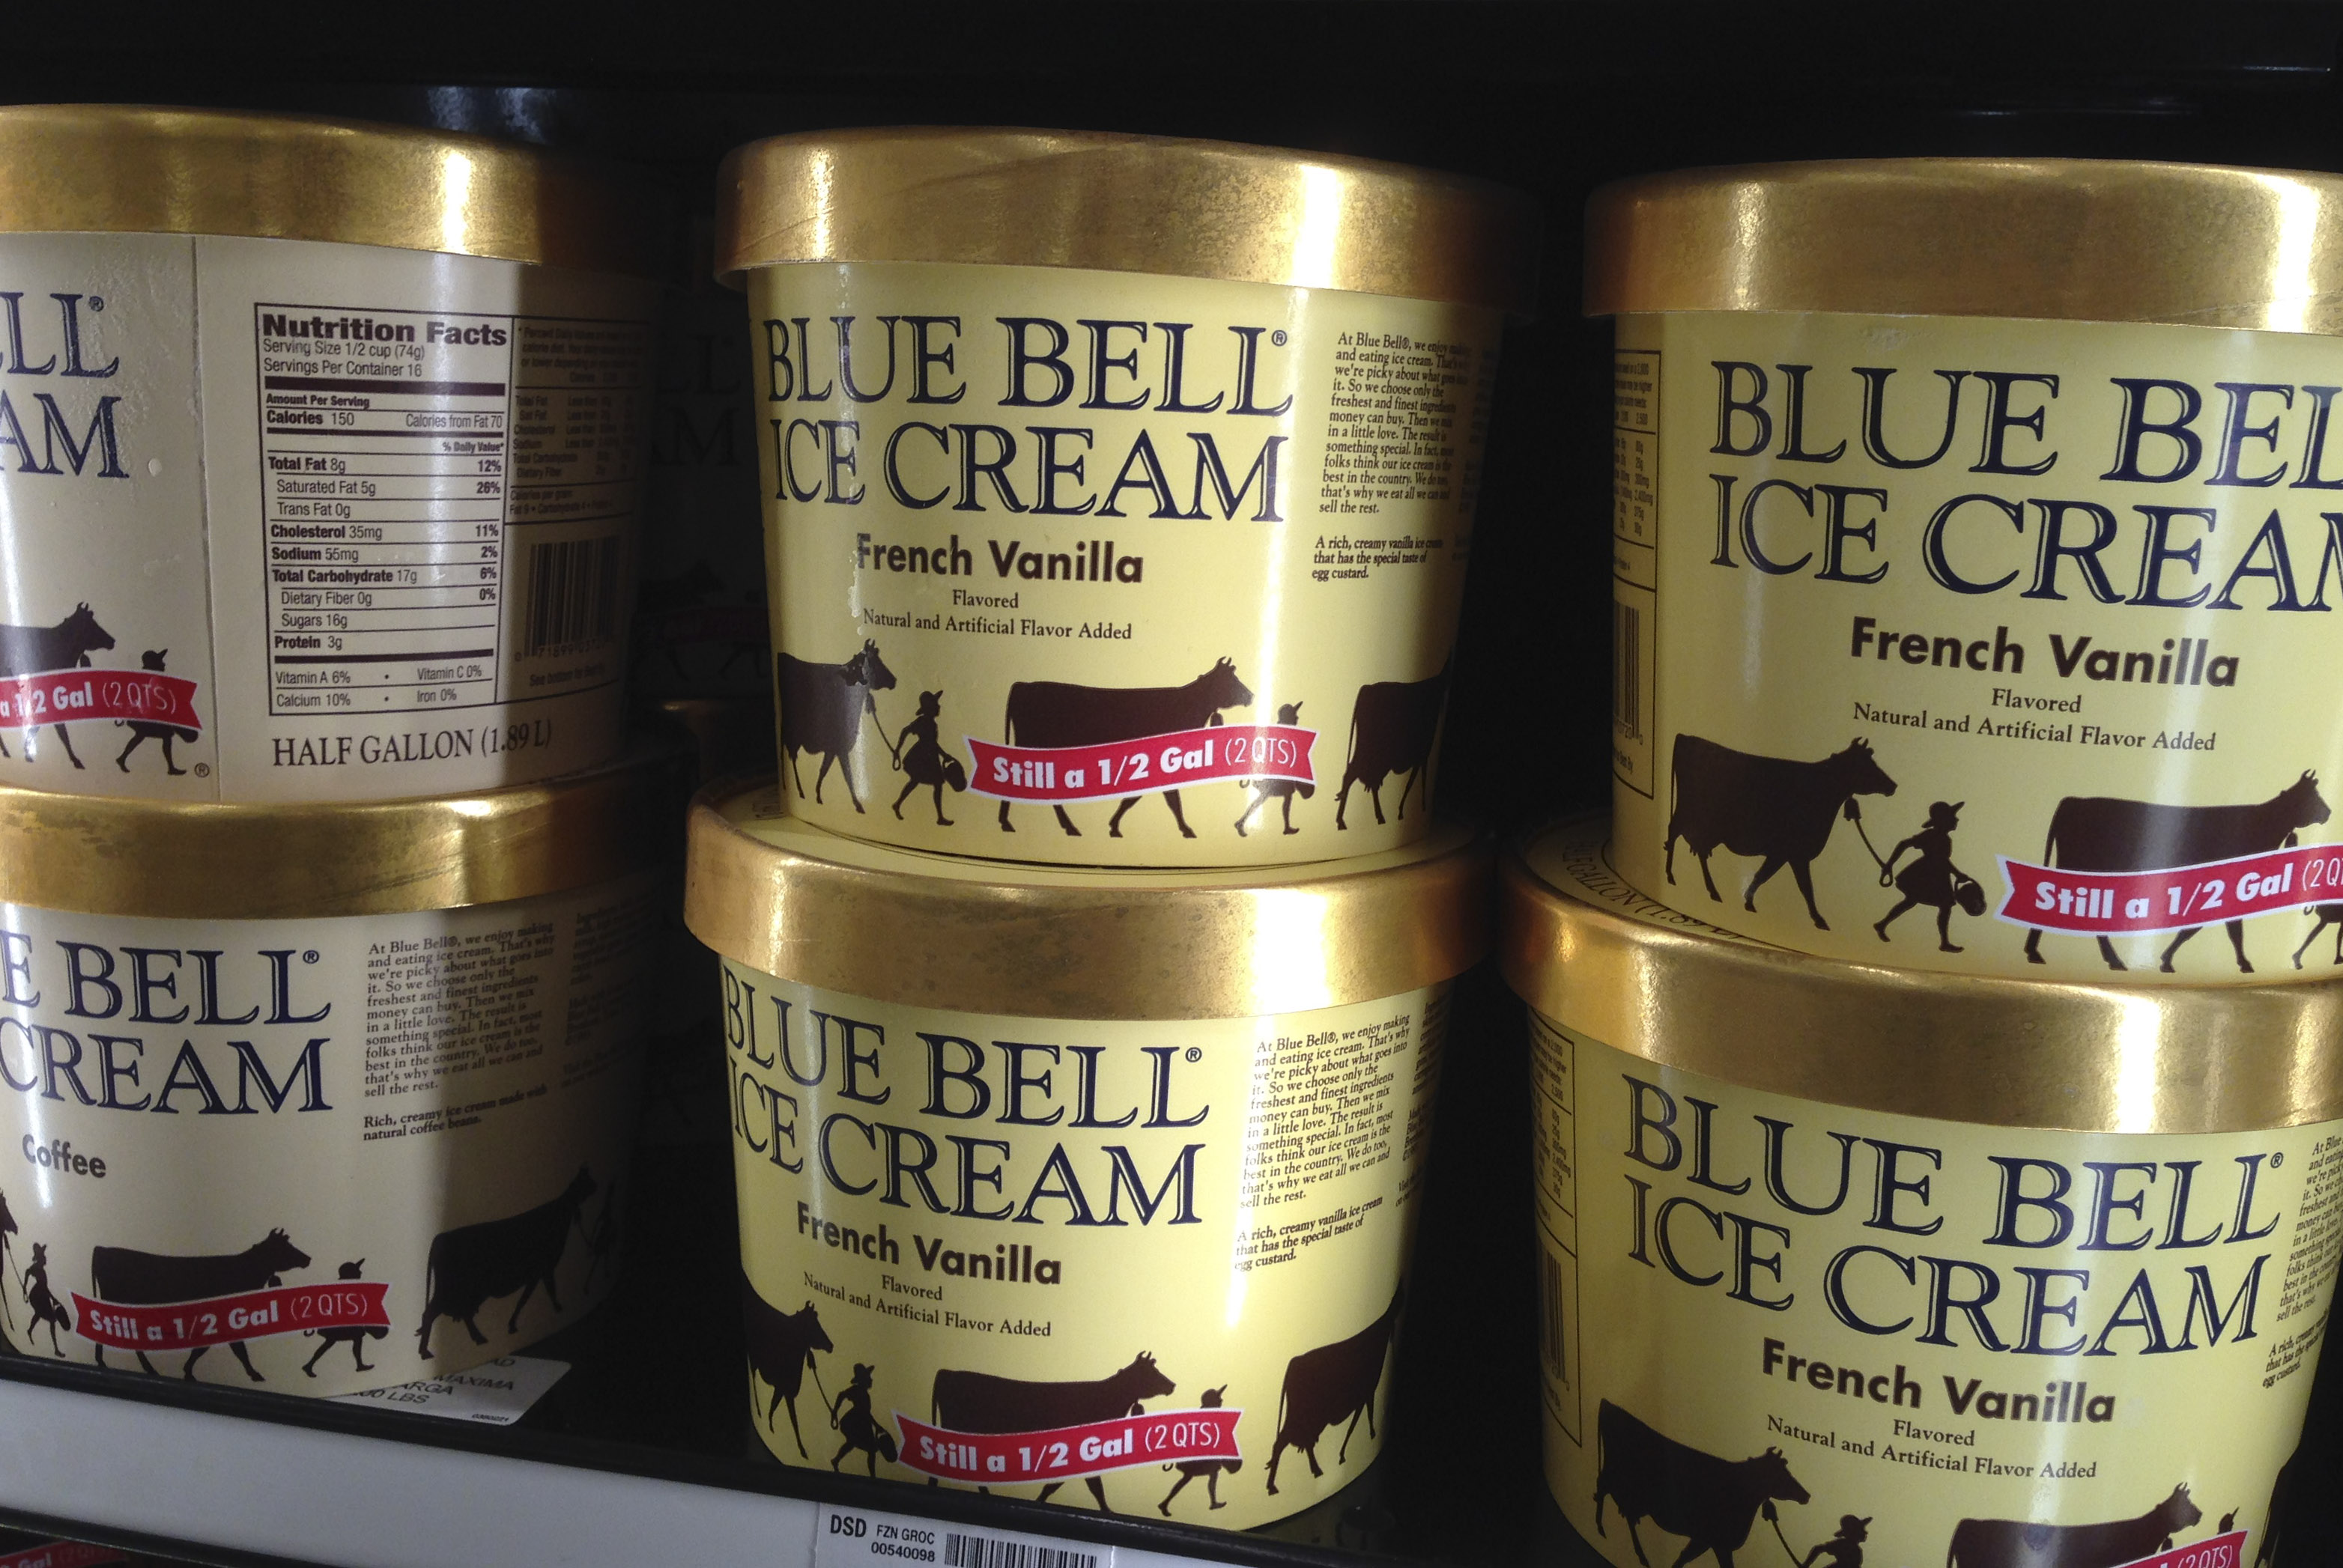 Photos Show Stores 'Protecting' Ice Cream From Lickers